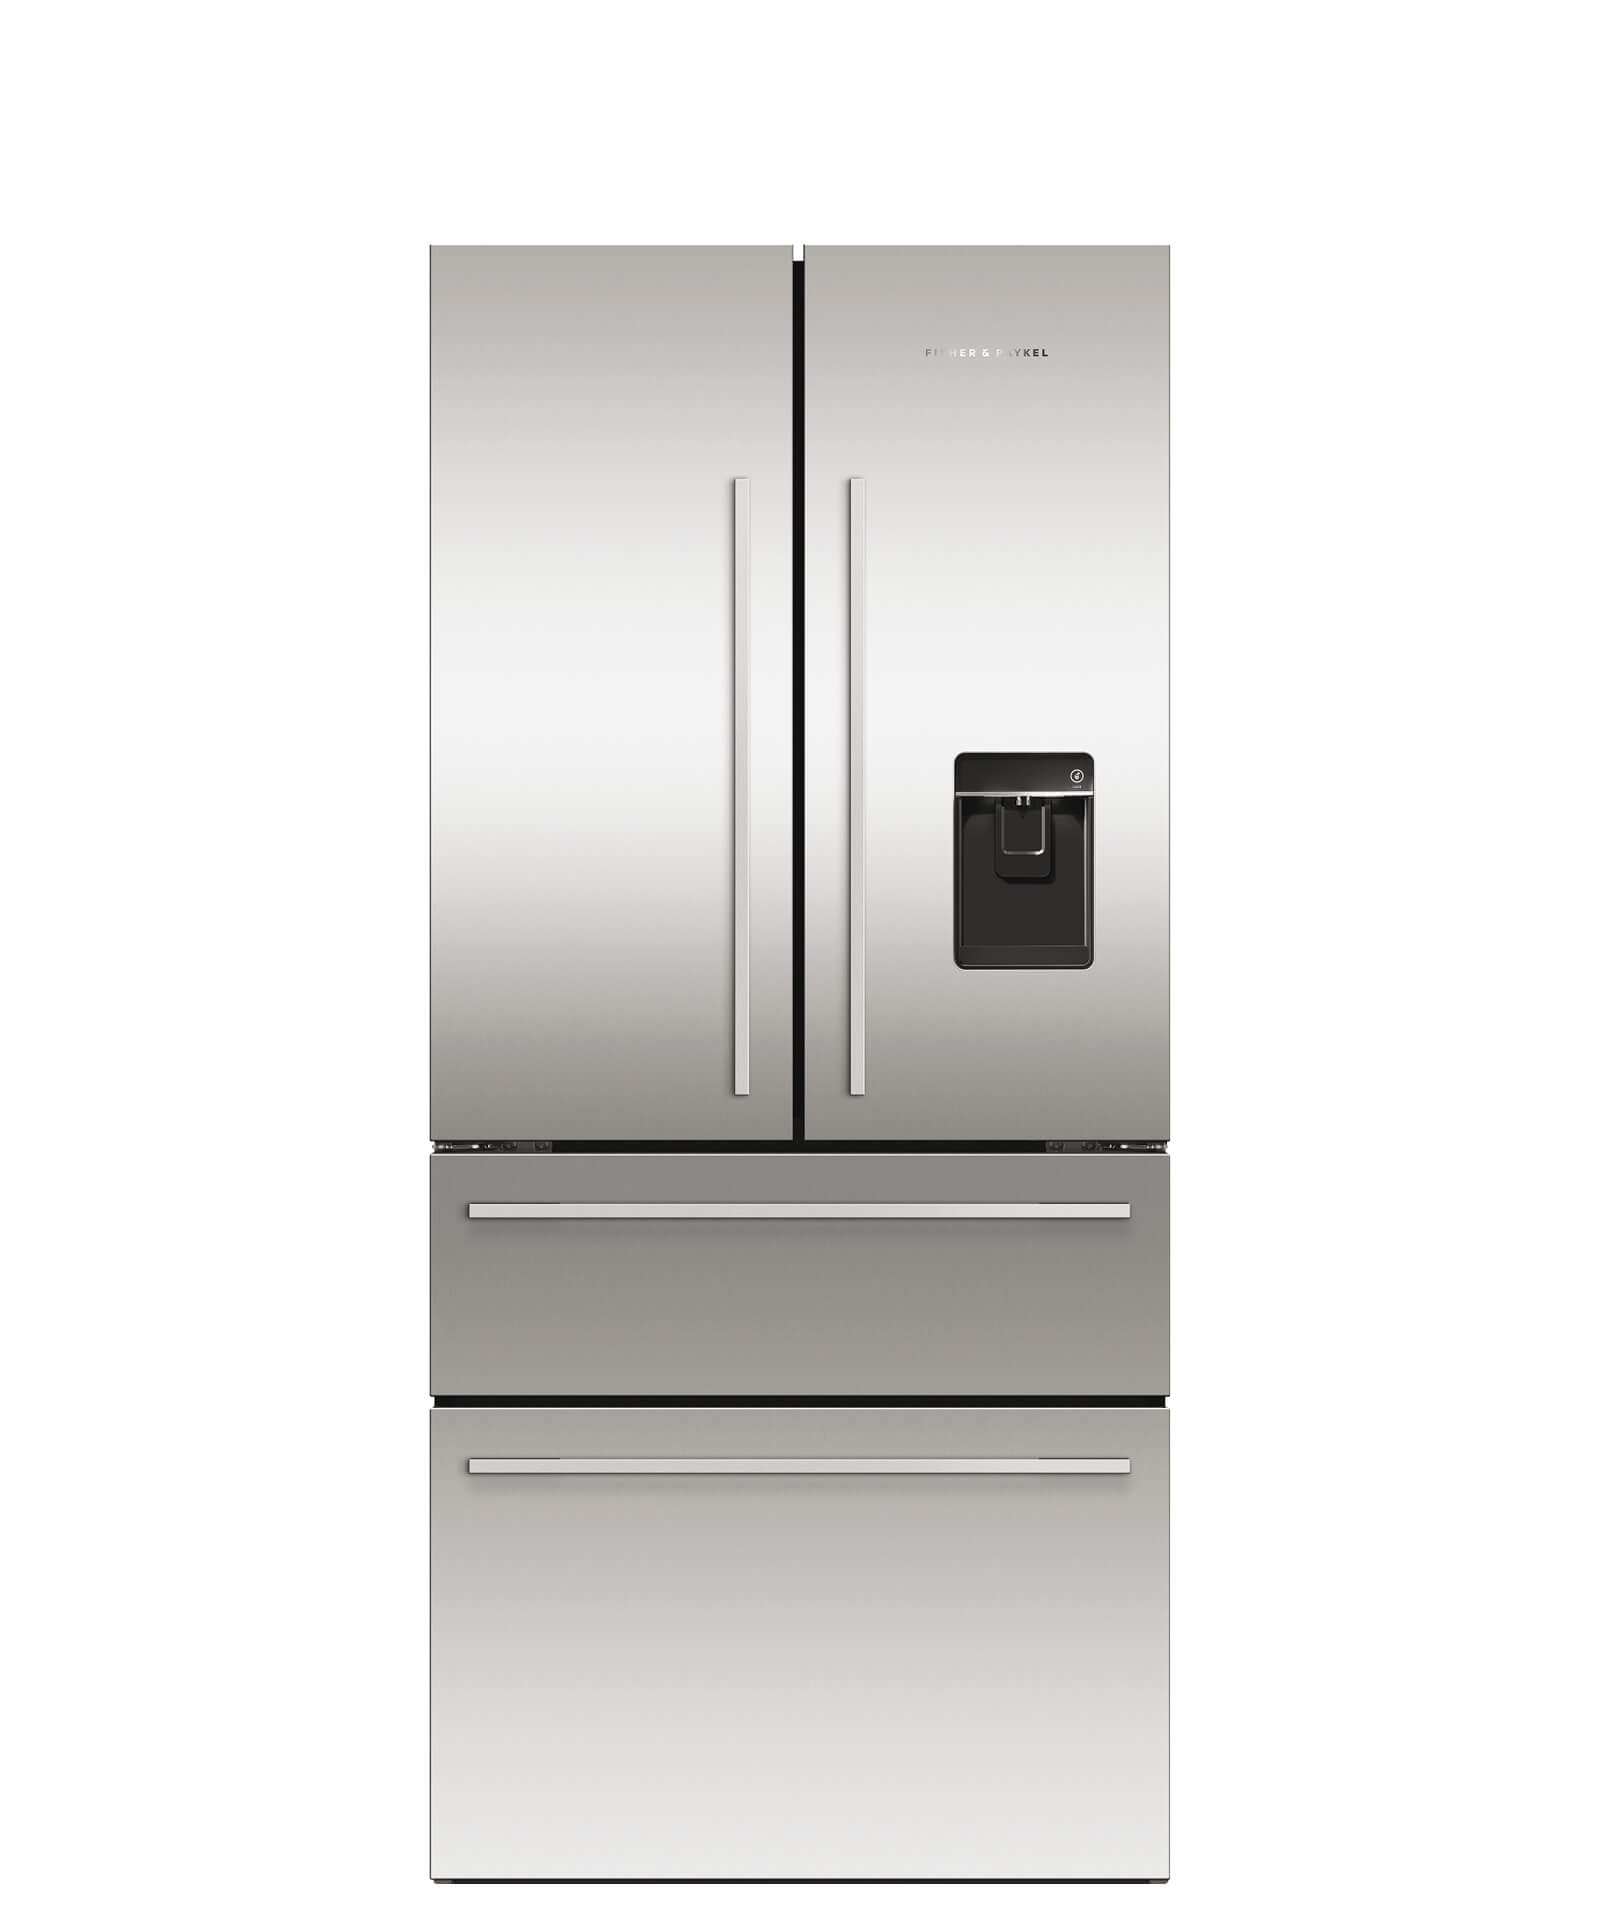 Fisher and Paykel ActiveSmart™ Refrigerator - 16.9 cu ft. counter depth French Door, Ice & Water